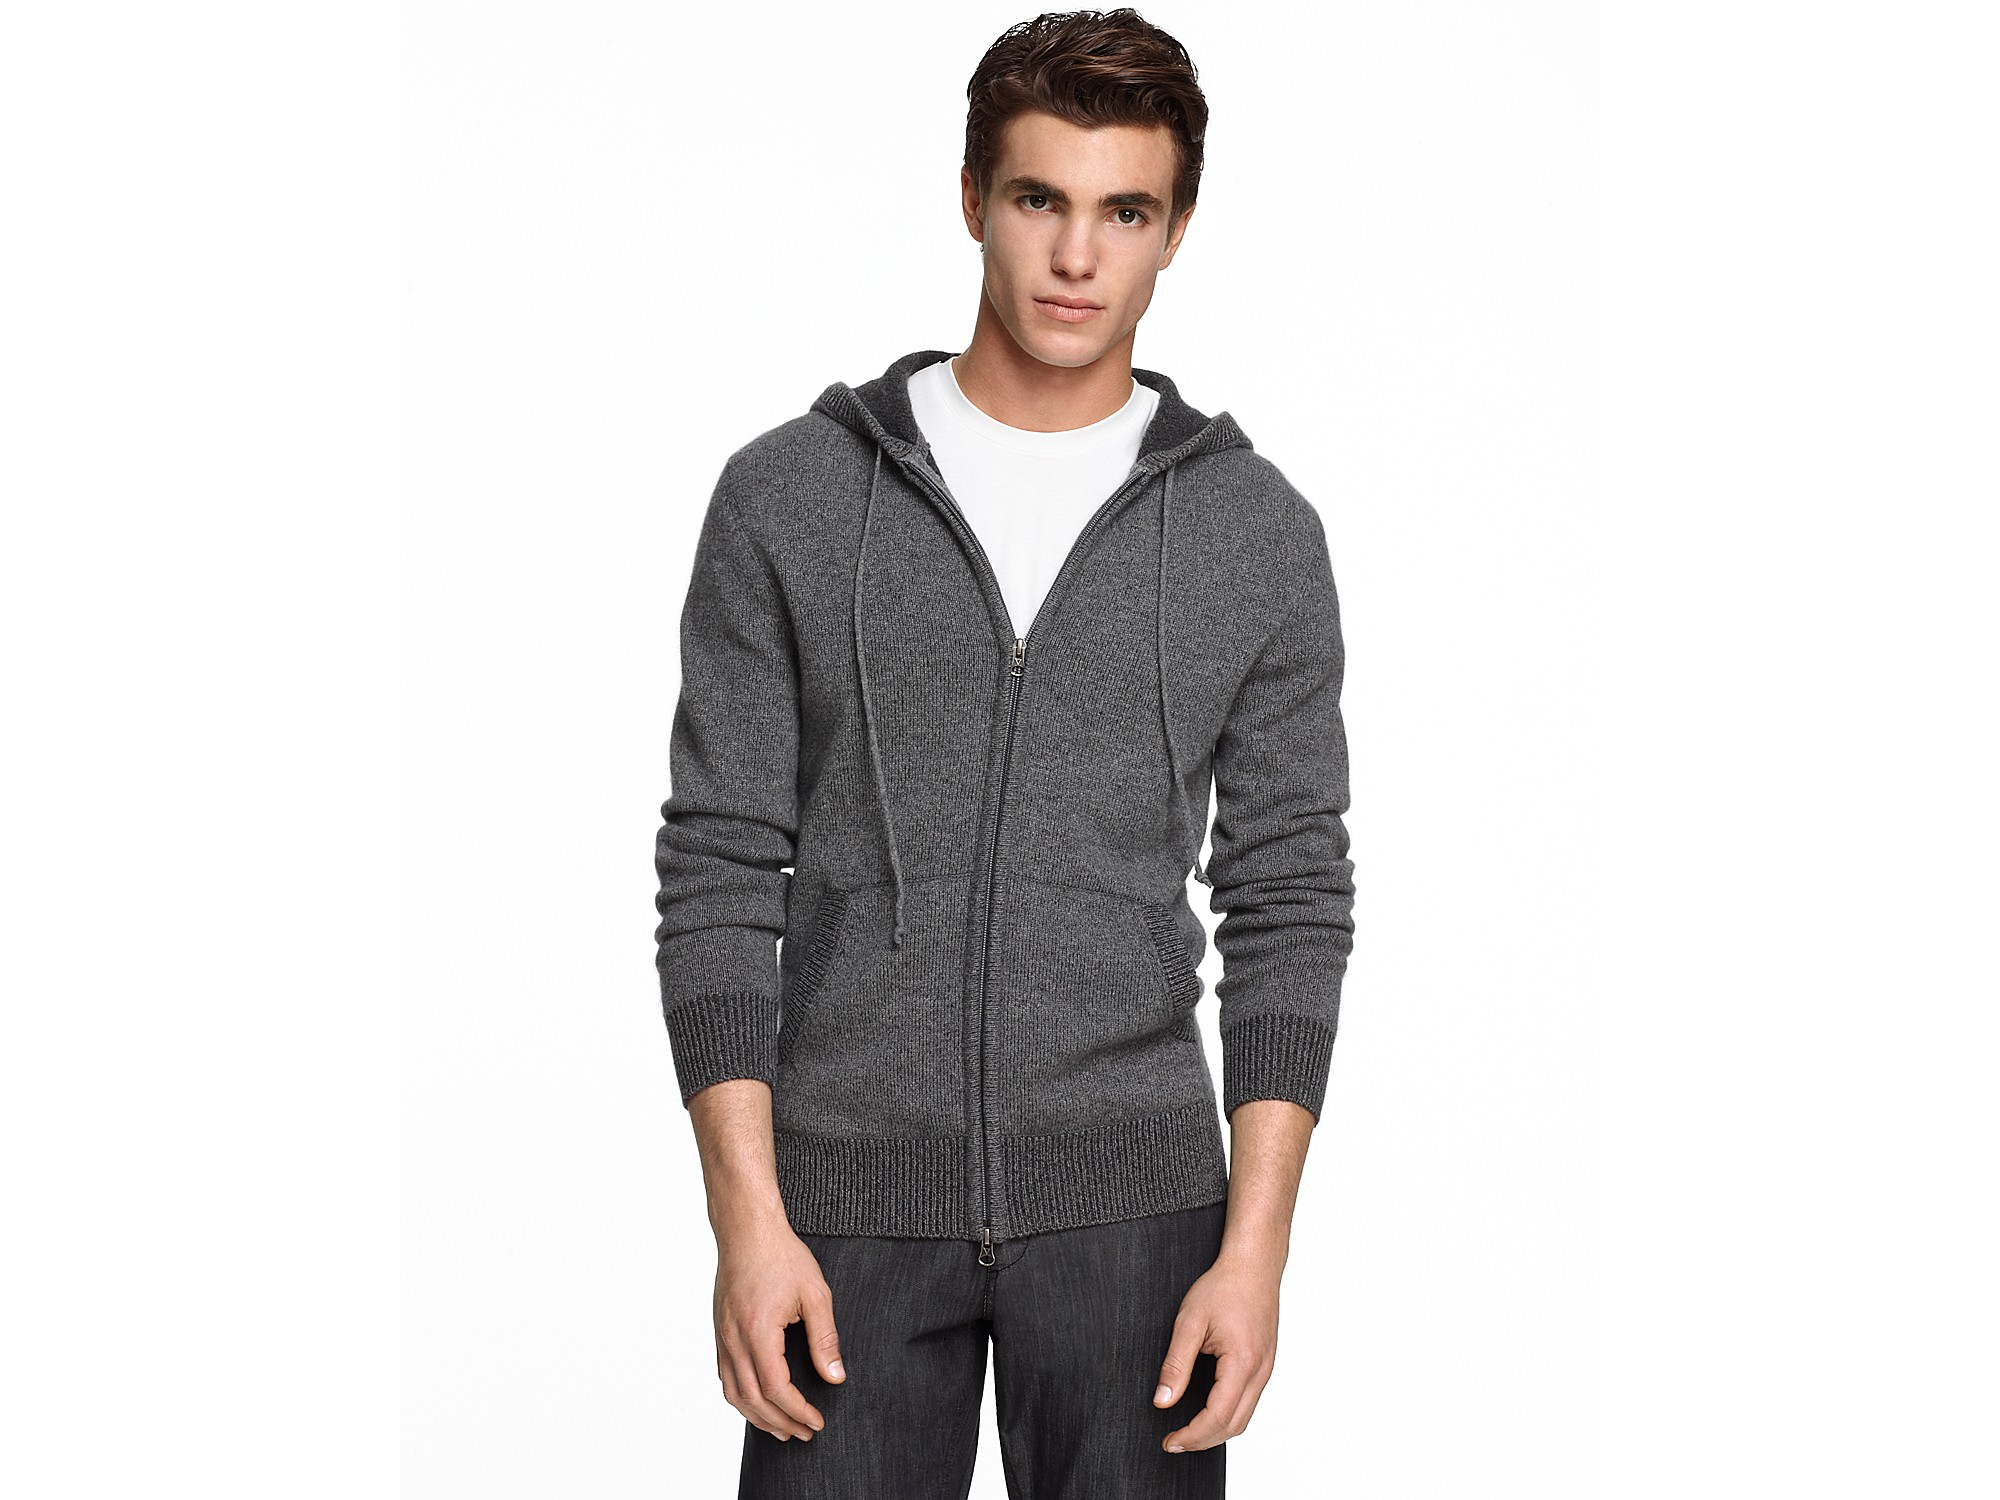 Vince Plated Cashmere Zip Up Hooded Sweater In Gray For Men H Cinder Lyst